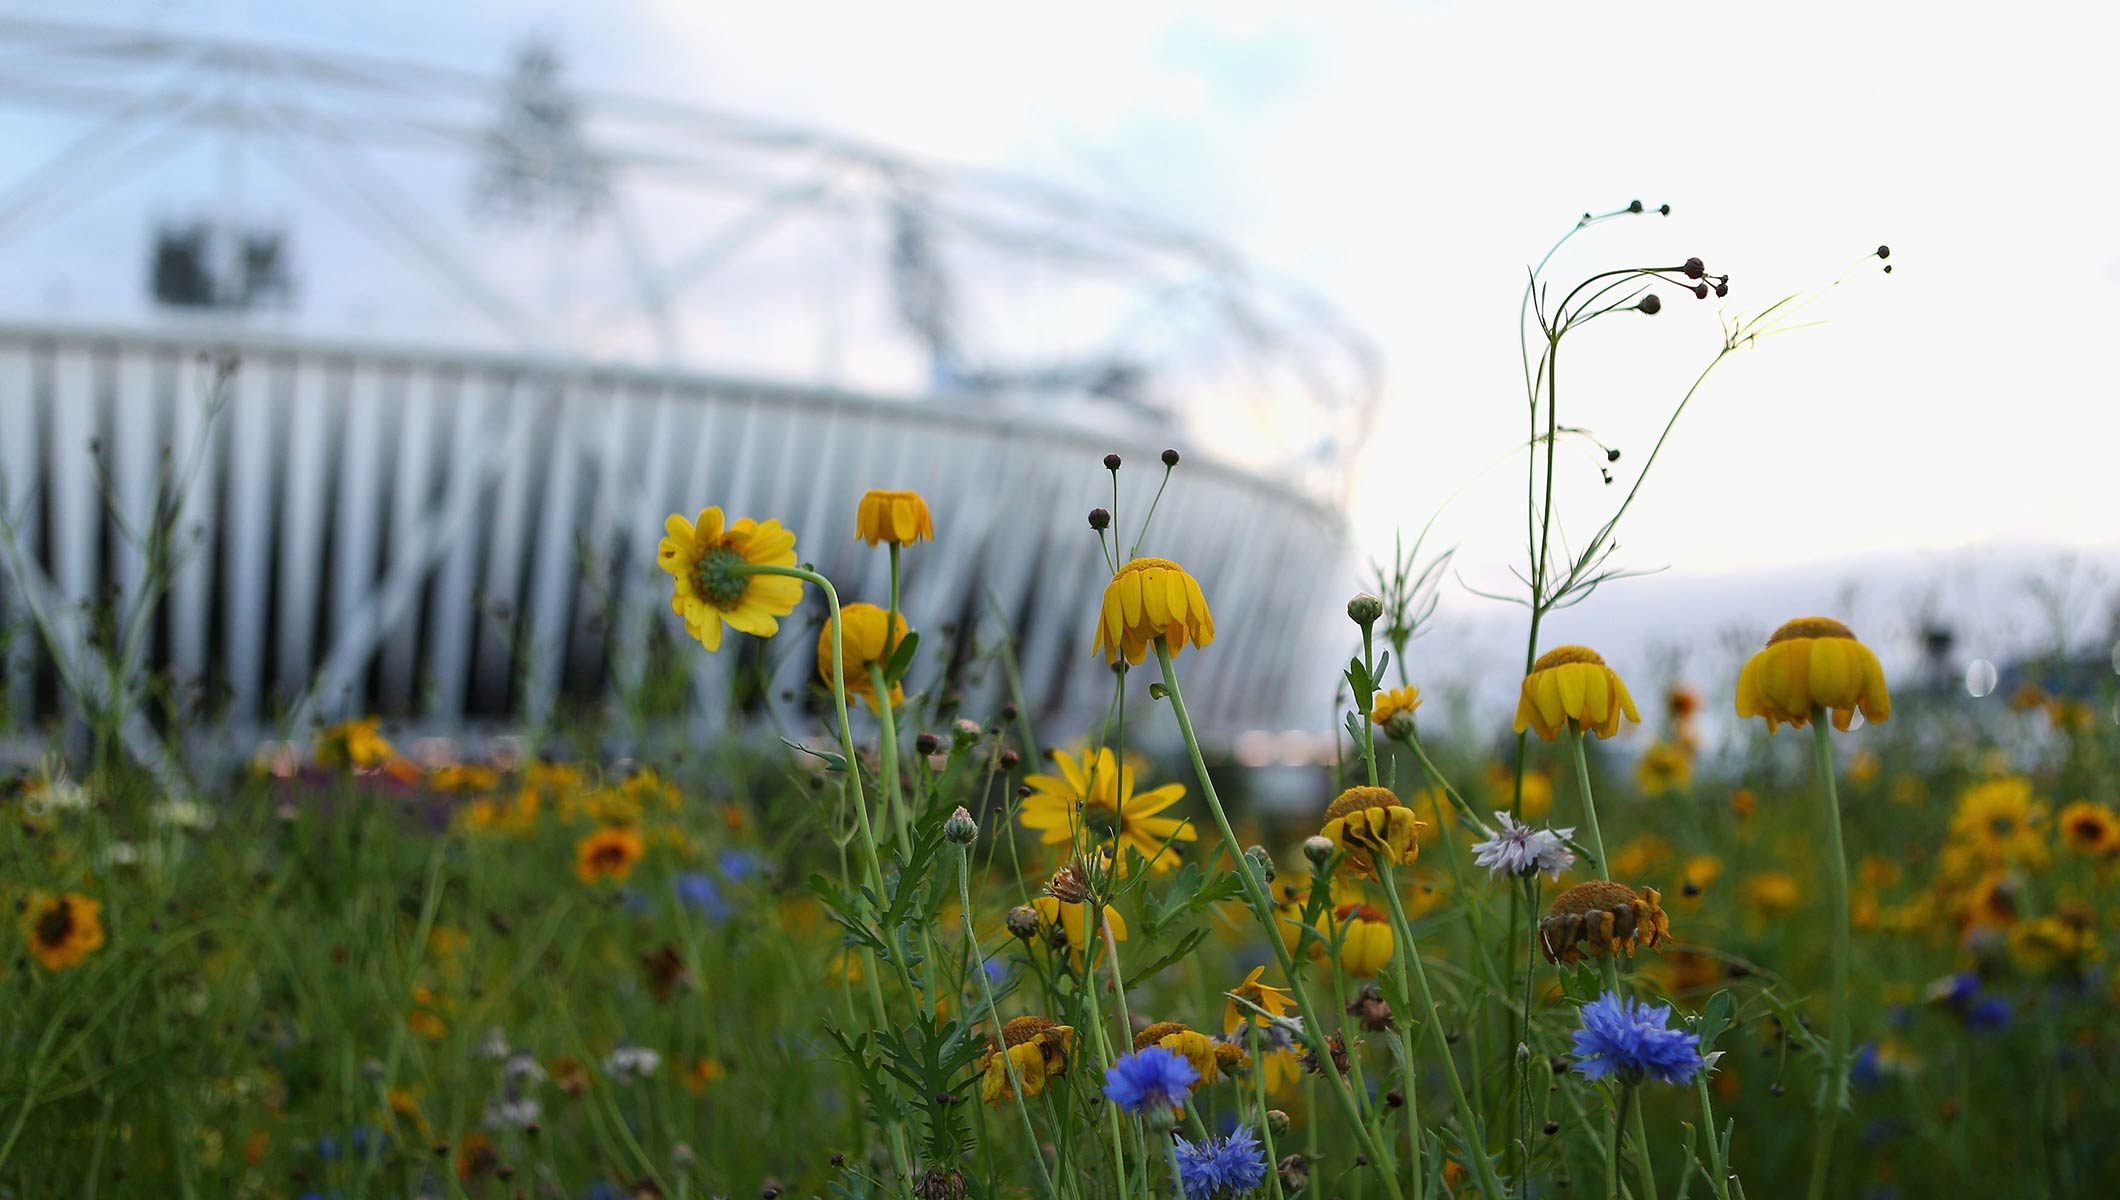 IOC-supported guide outlines how sustainable venues can help conserve nature